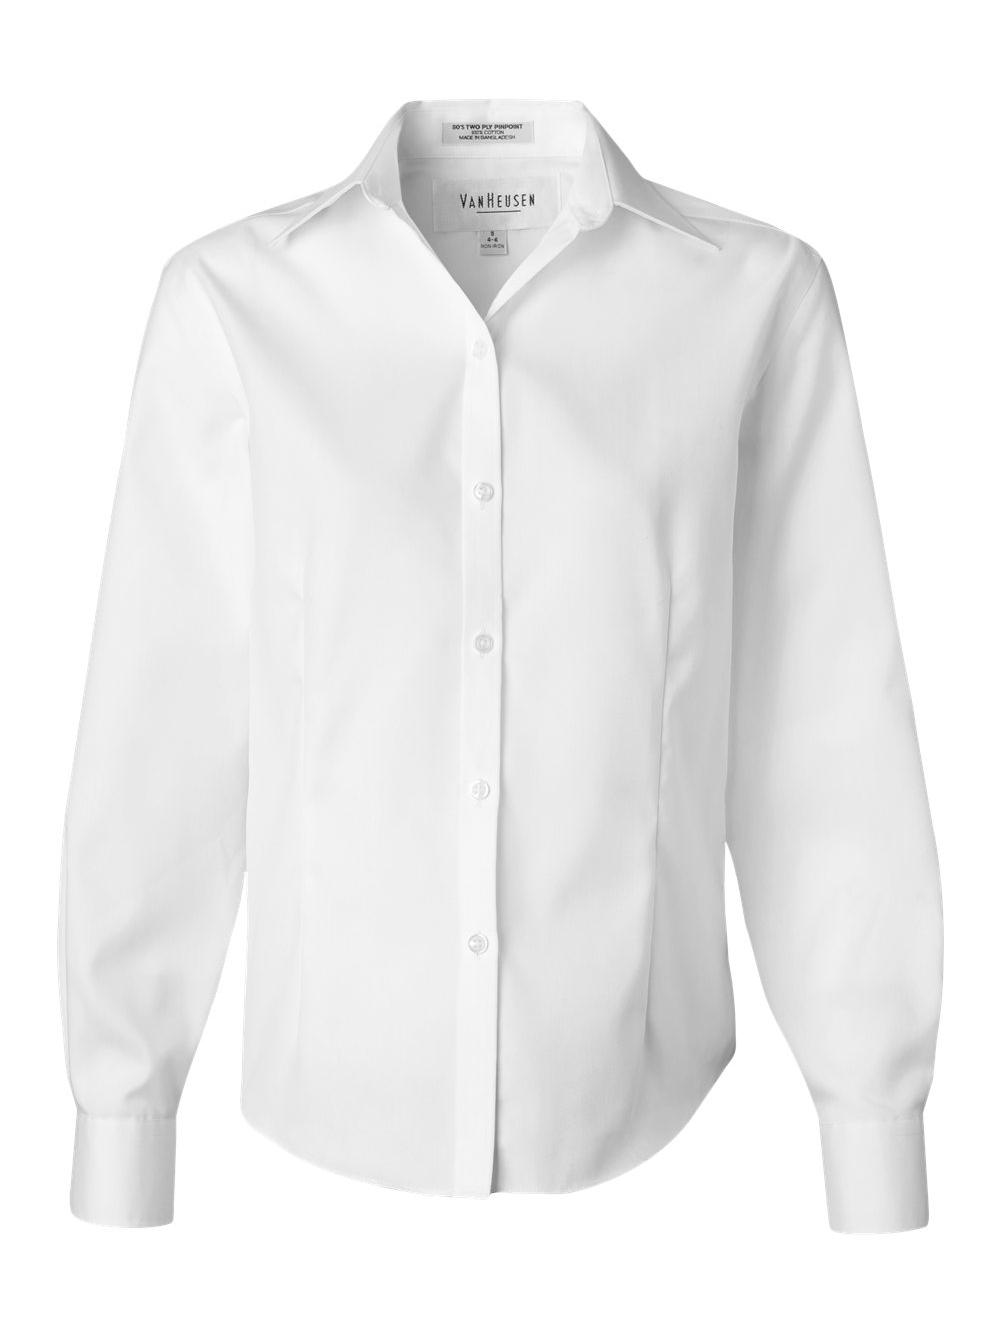 Van-Heusen-Women-039-s-Non-Iron-Pinpoint-Oxford-Shirt-13V0144 thumbnail 12